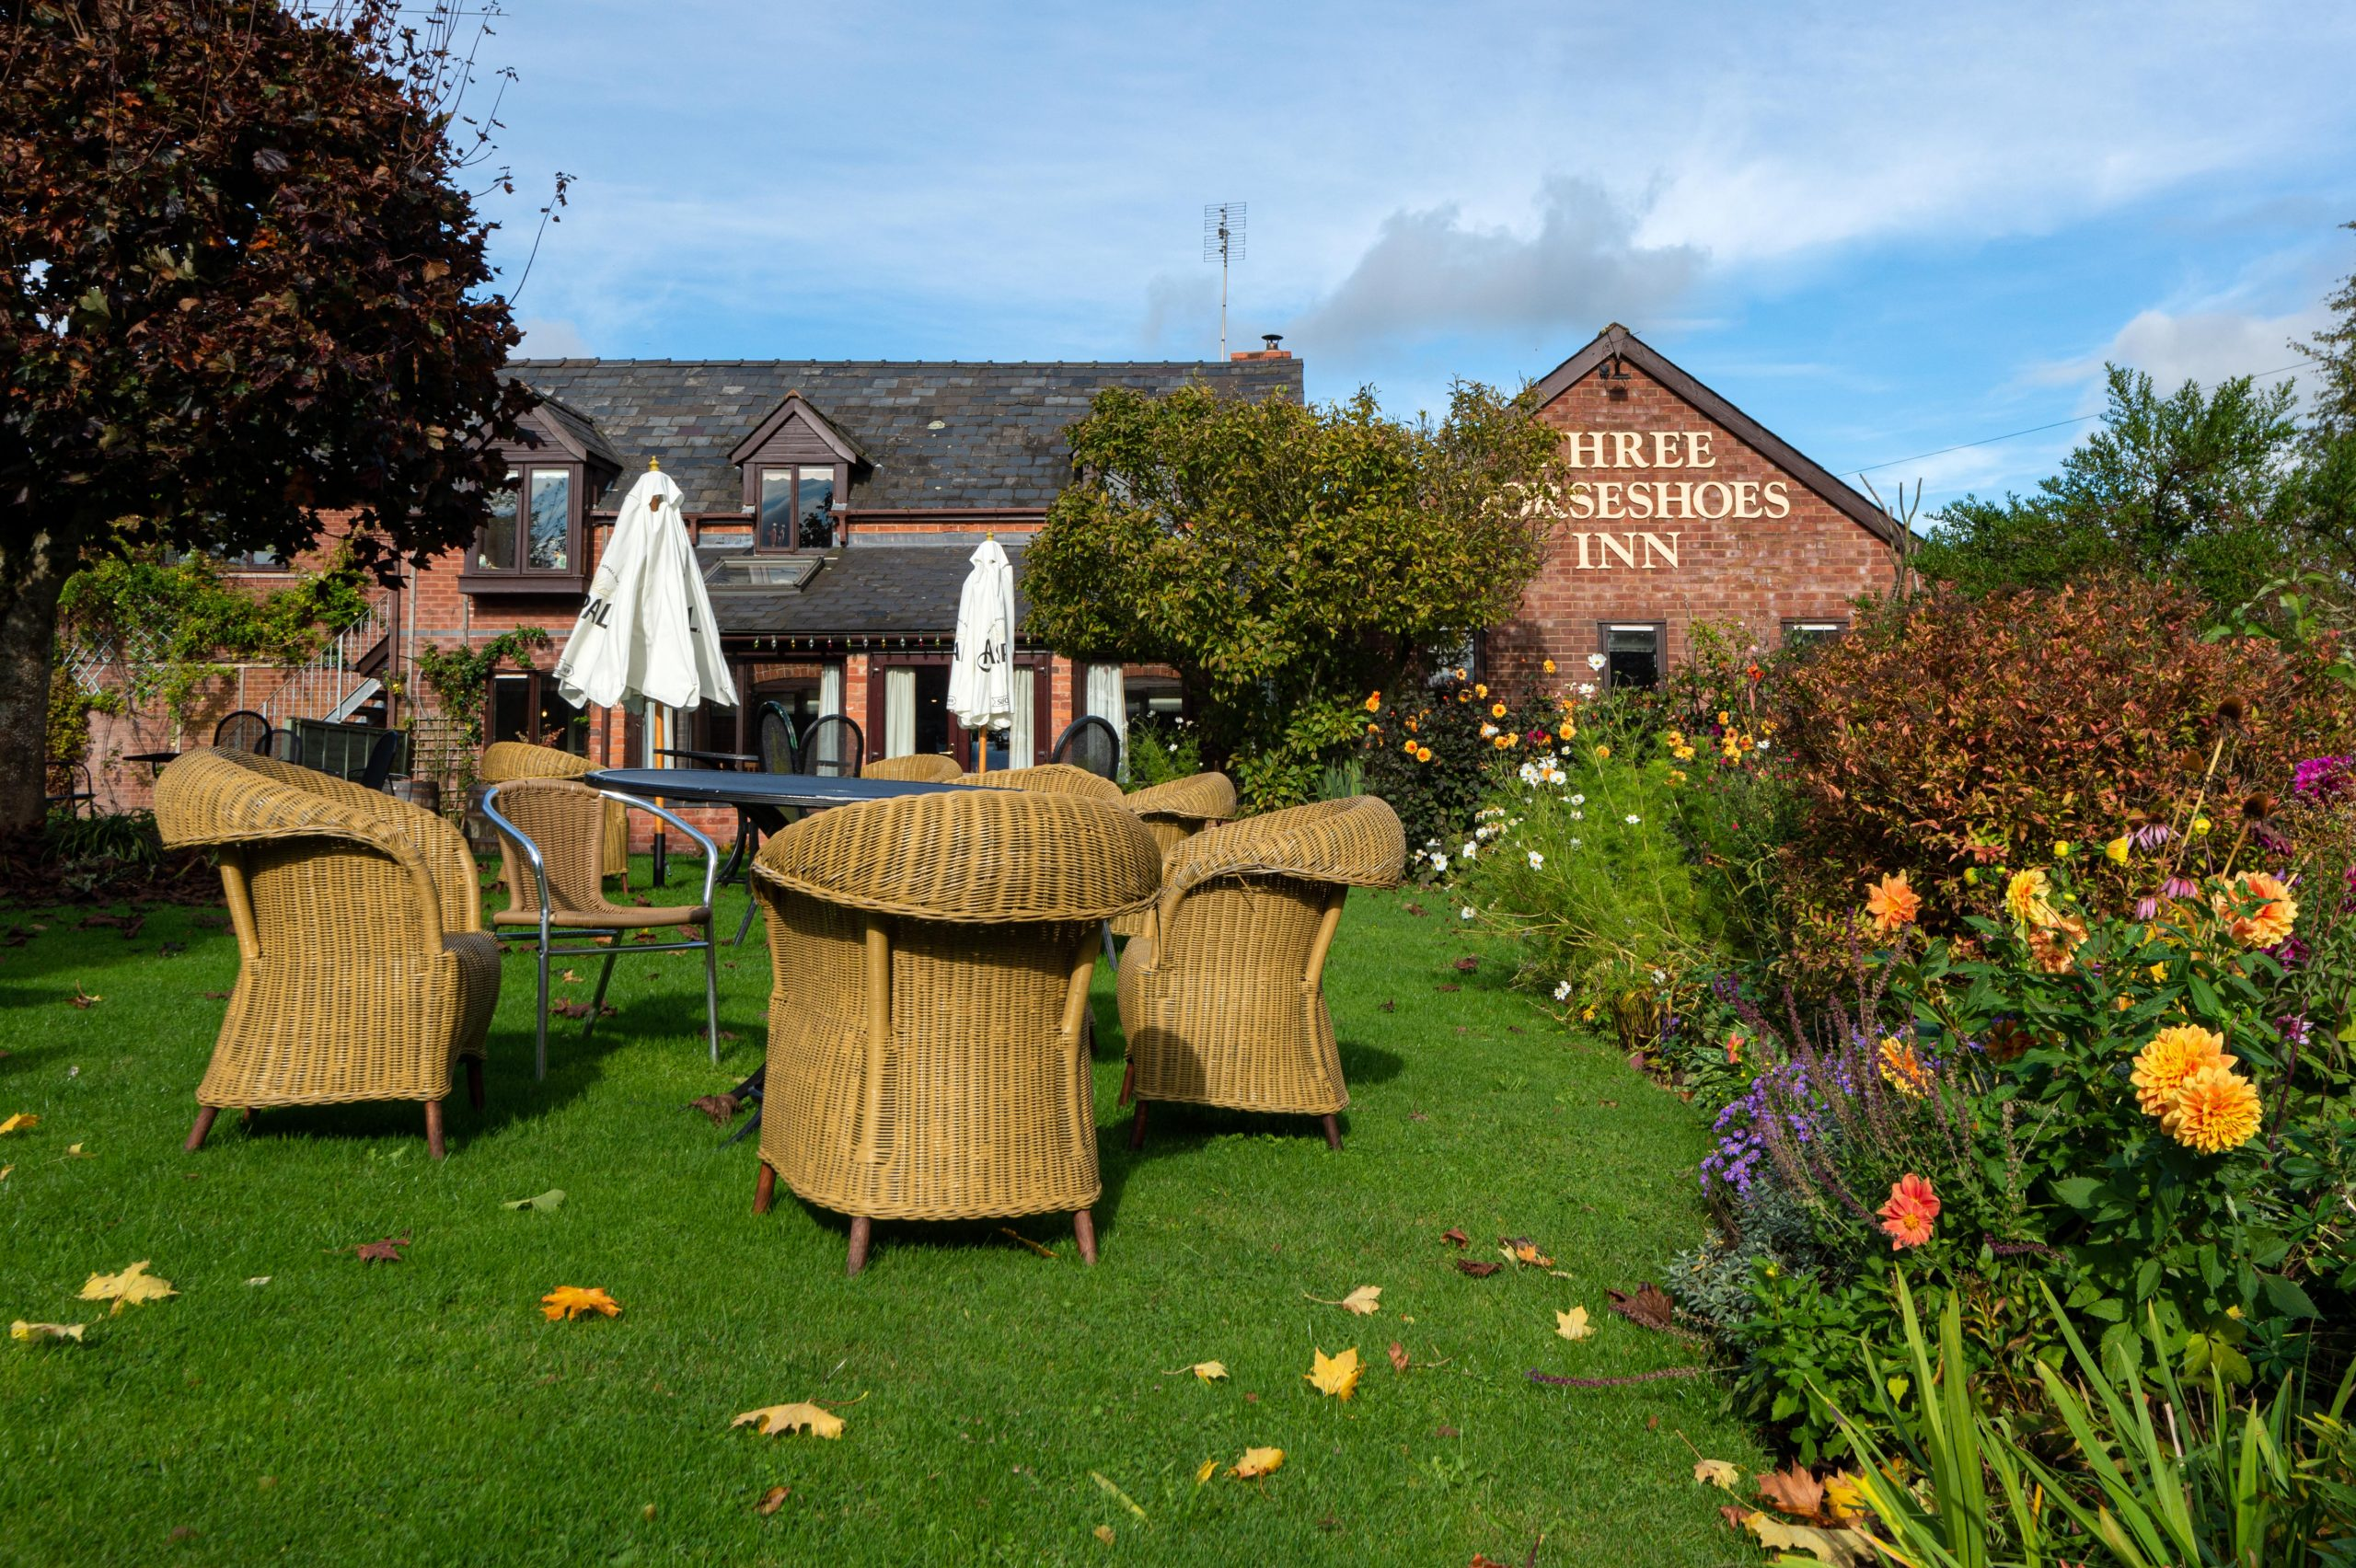 The Three Horseshoes Inn garden